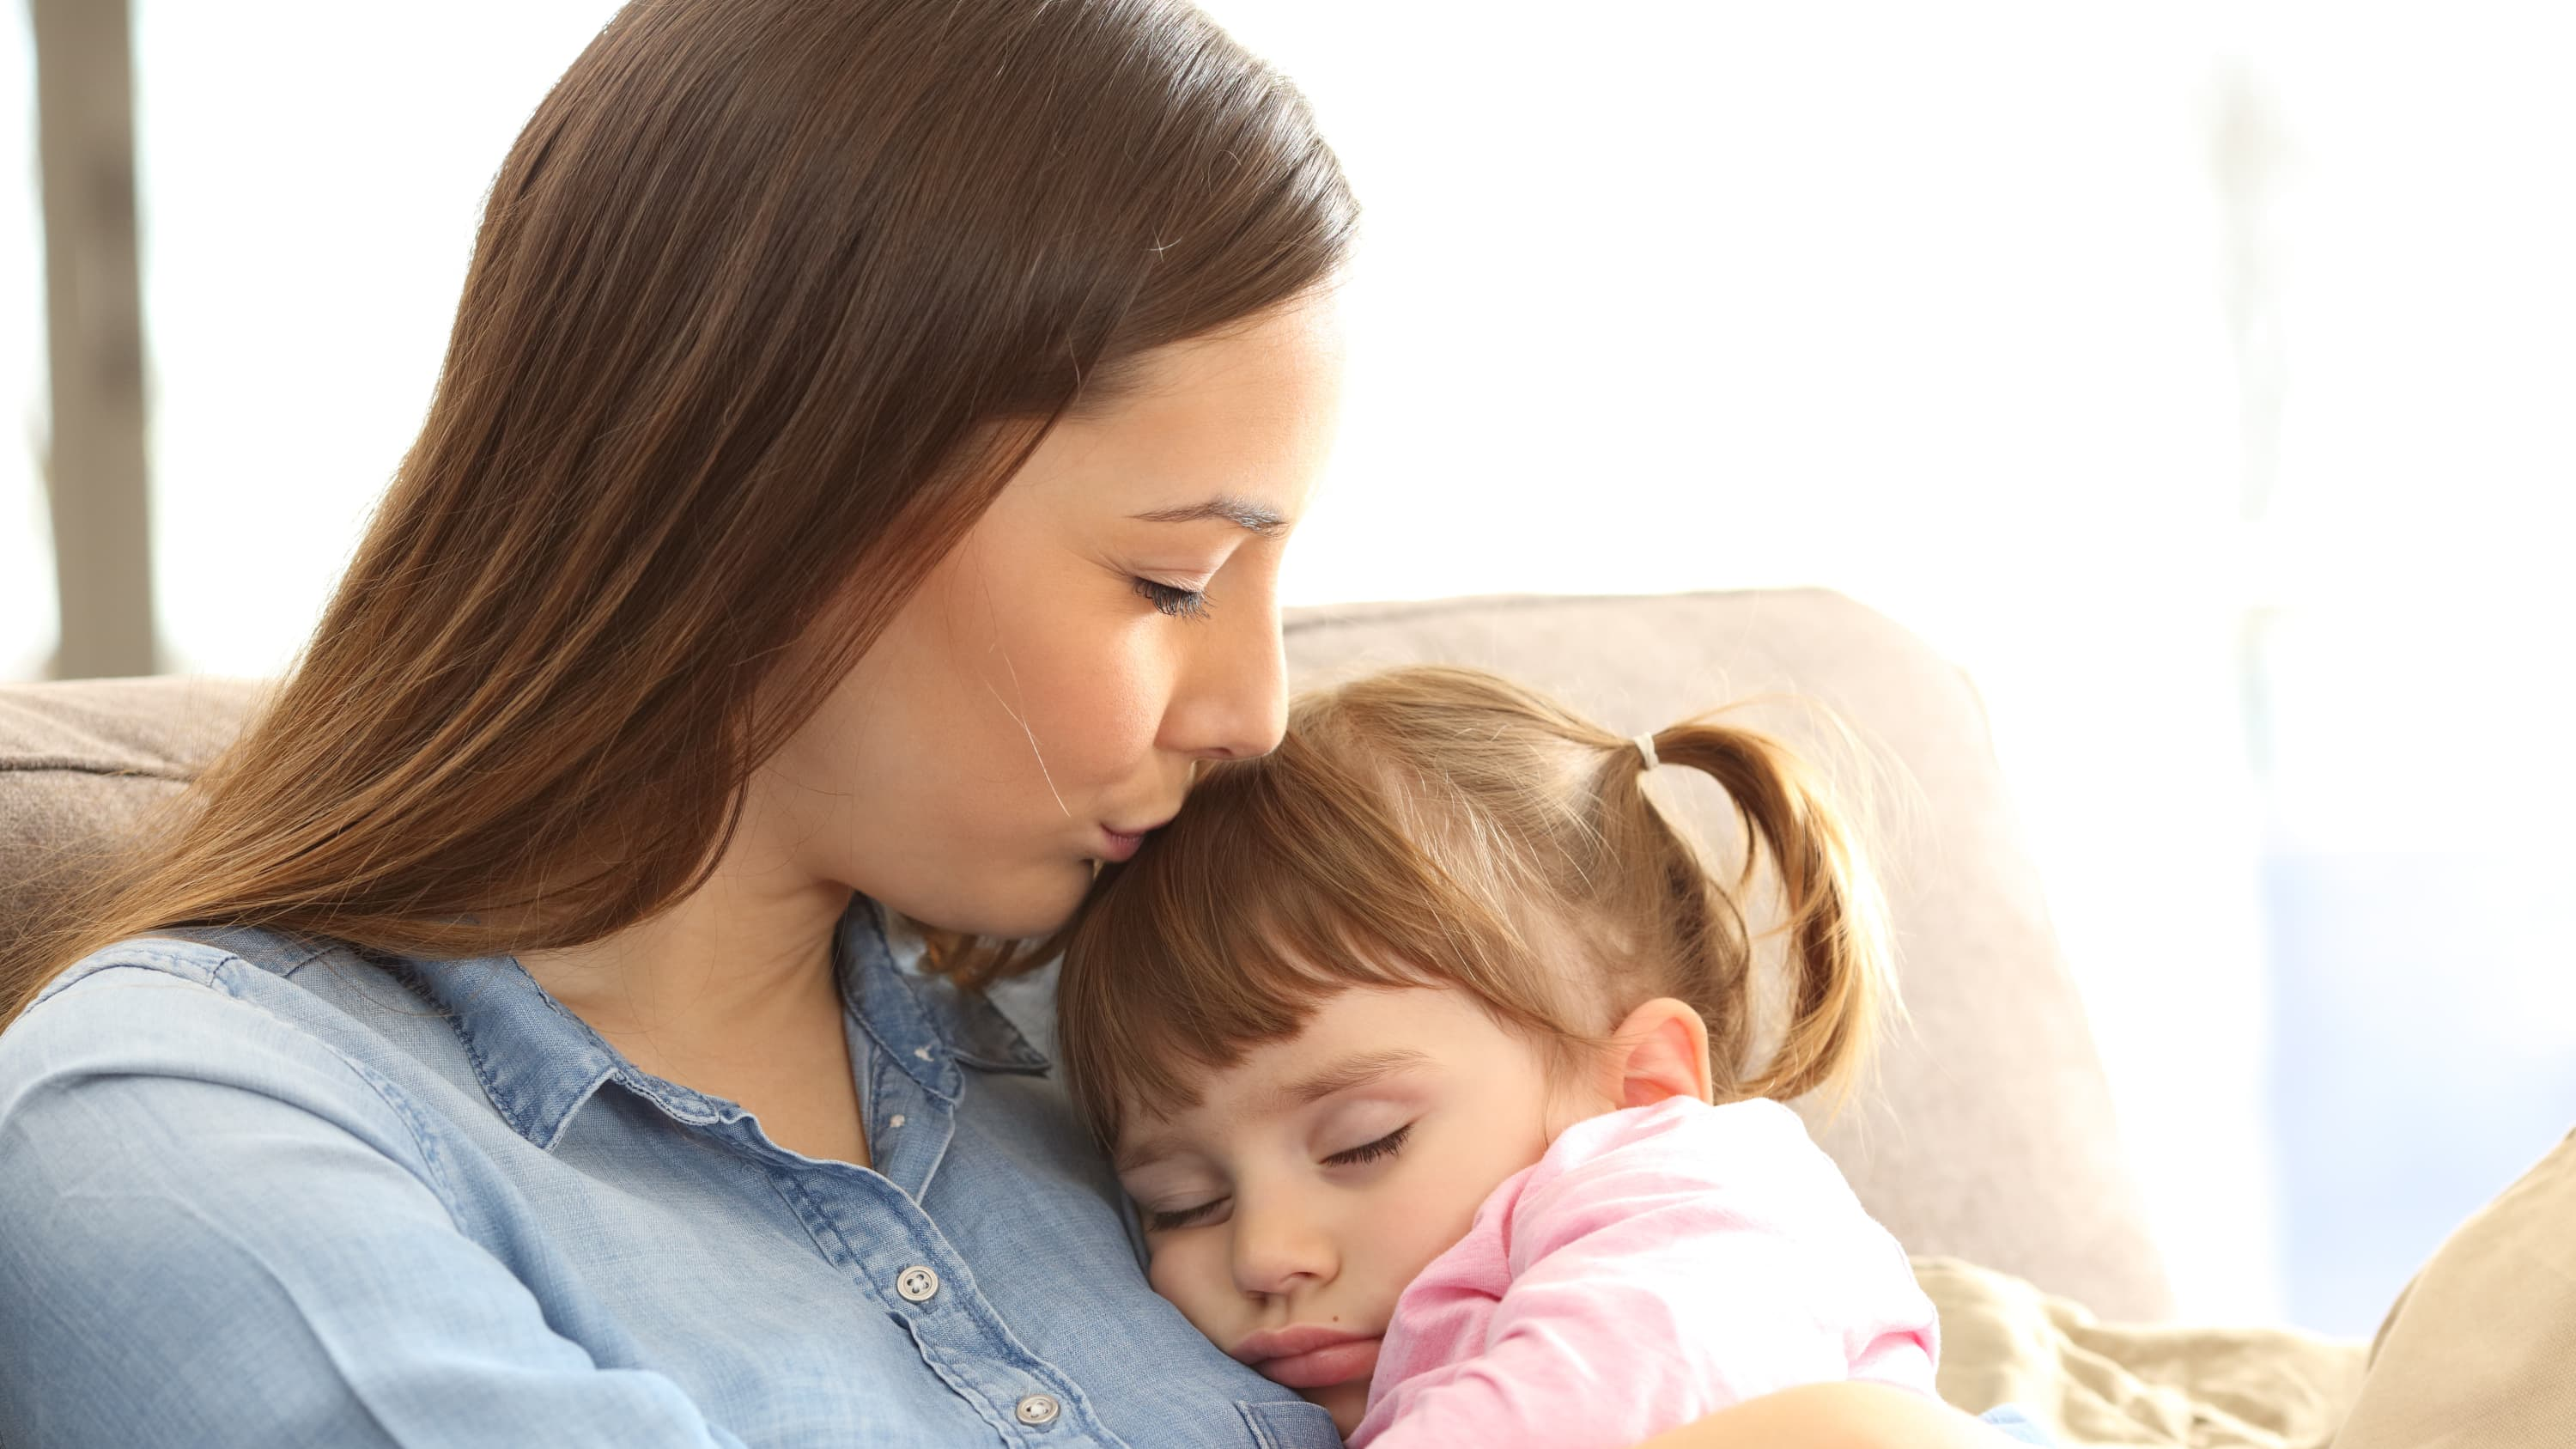 Close up portrait of a mother kissing her young daughter, who possibly has pediatric asthma.